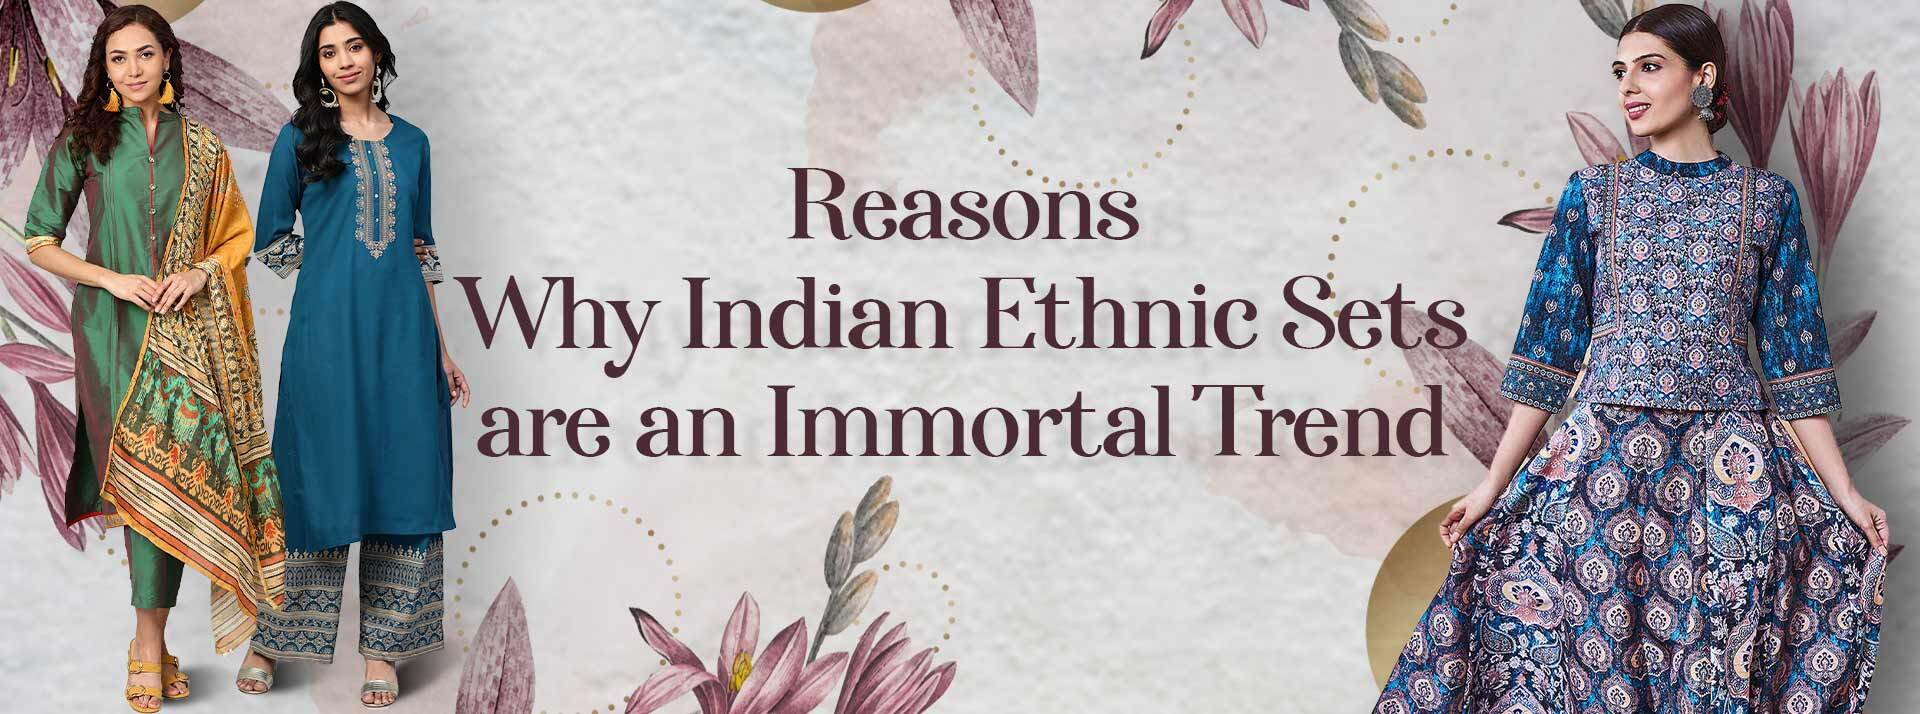 Reasons Why Indian Ethnic Sets Are an Immortal Trend